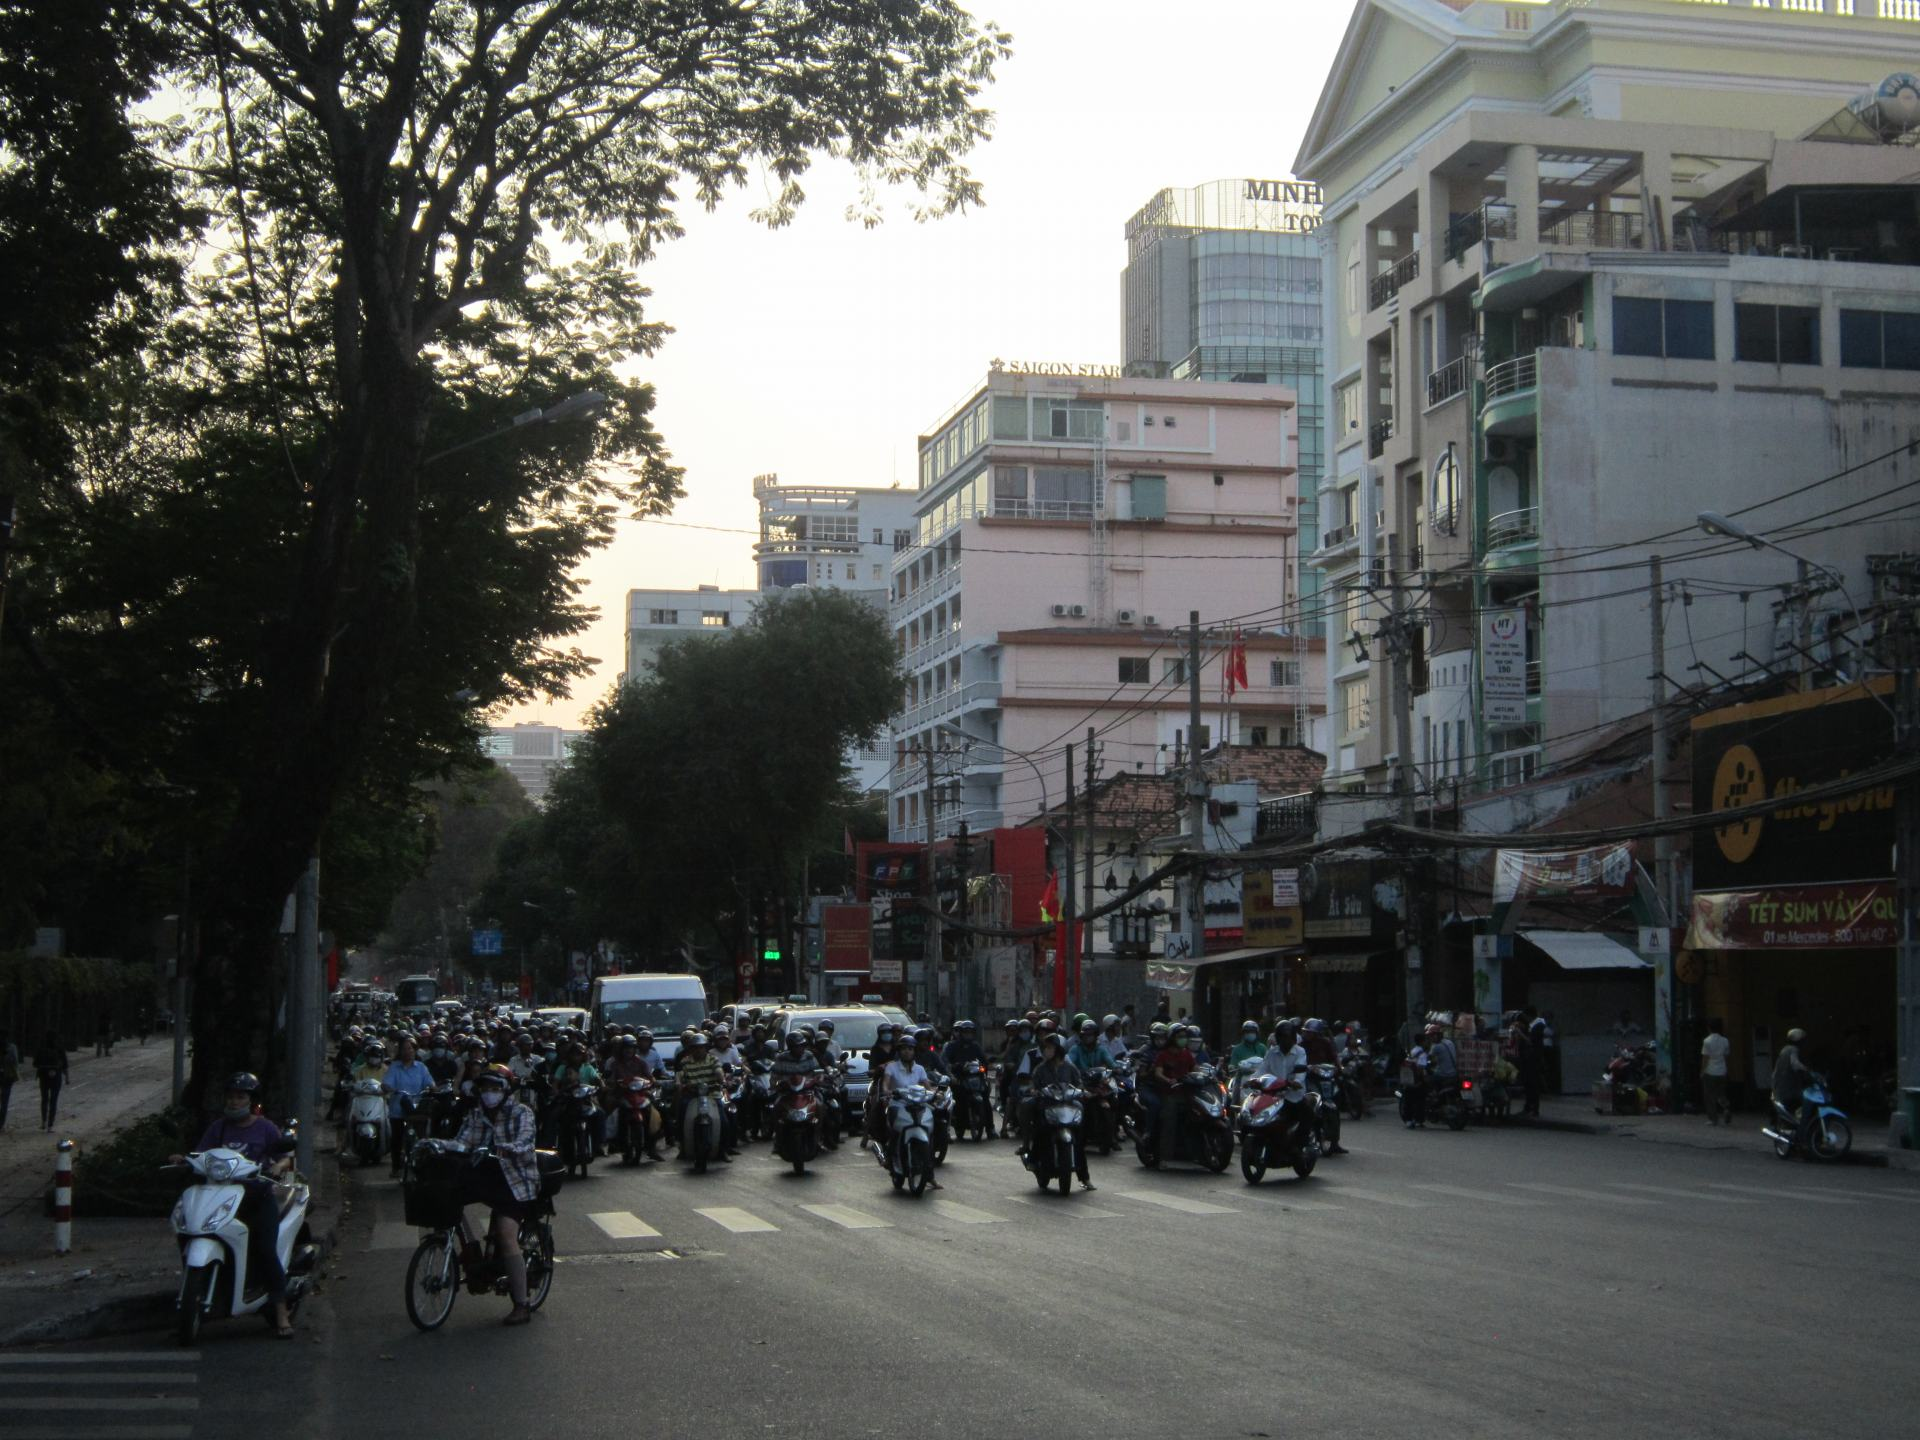 A road in Saigon, Vietnam full of motorbikes and cars